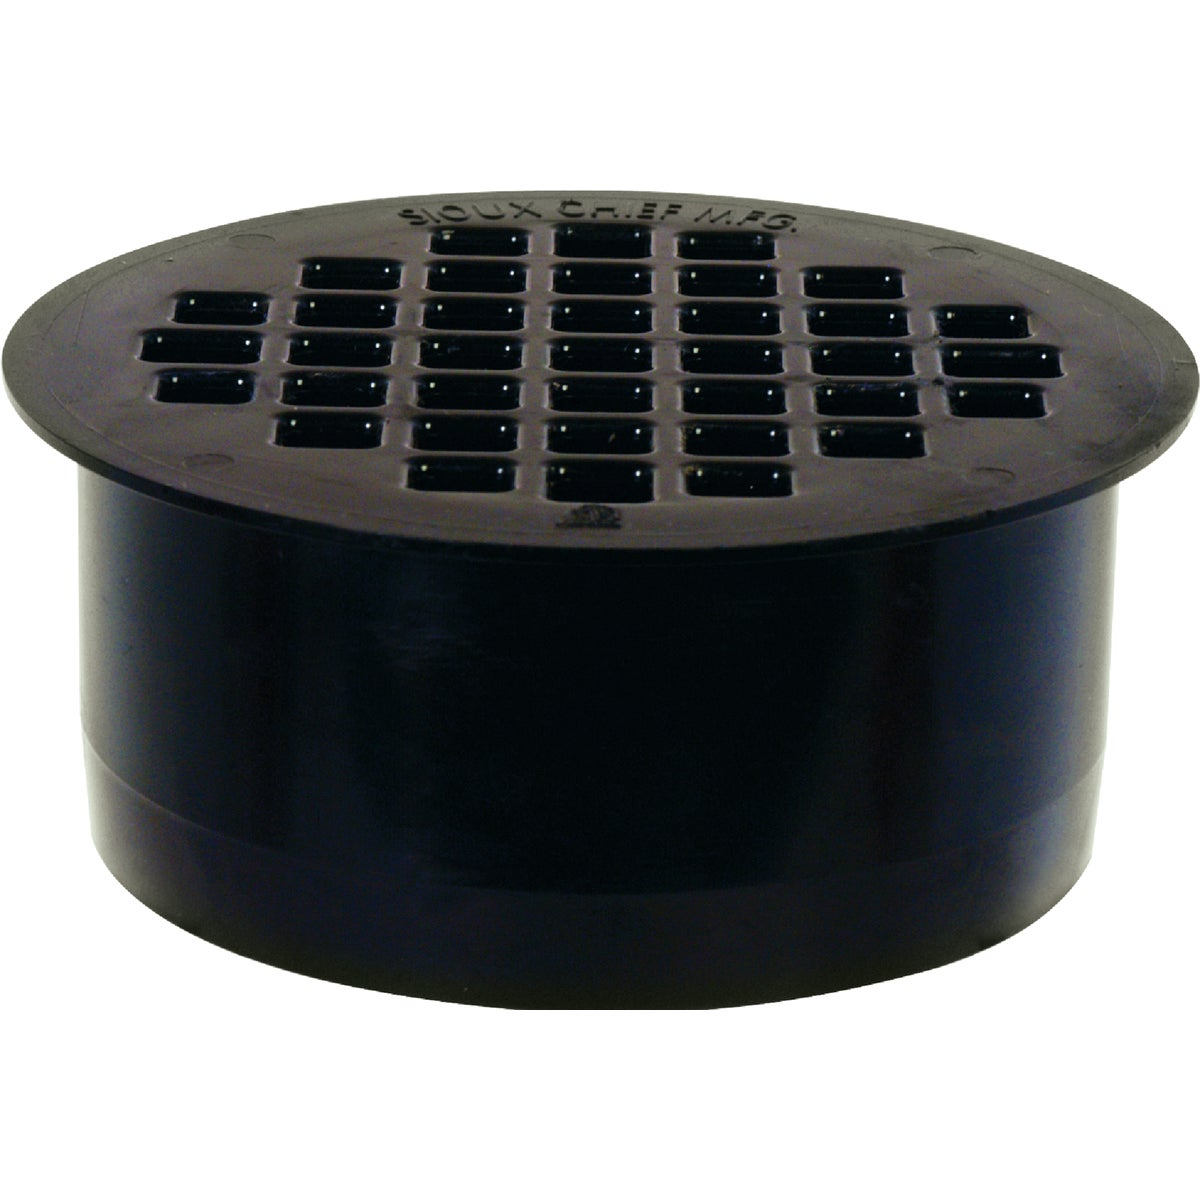 "2"" ABS DRAIN - 845-2APK by Sioux Chief Mfg"